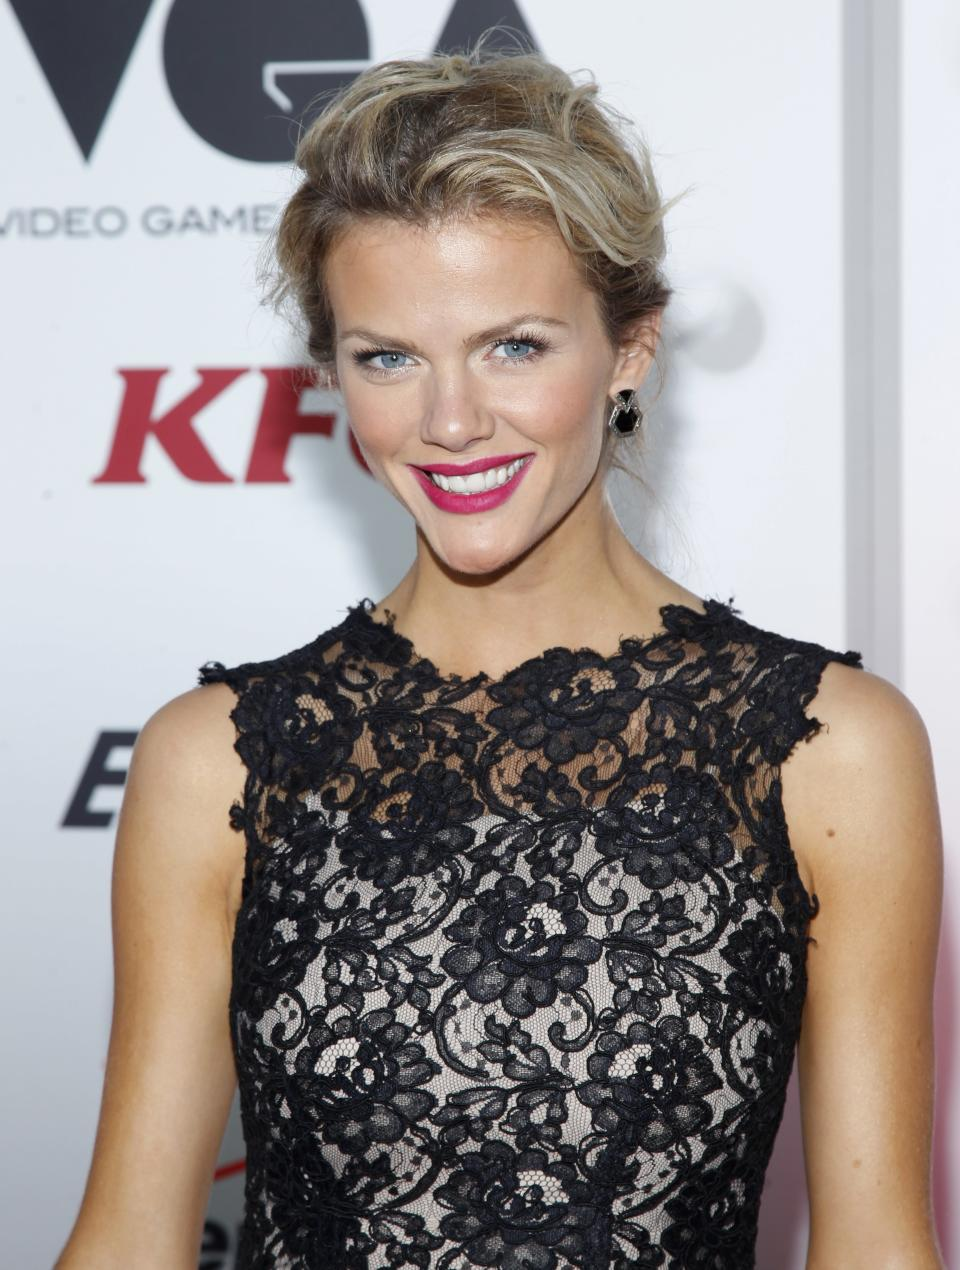 Brooklyn Decker arrives at Spike TV's Video Game Awards on Saturday, Dec. 10, 2011, in Culver City, Calif. (AP Photo/Joe Kohen)